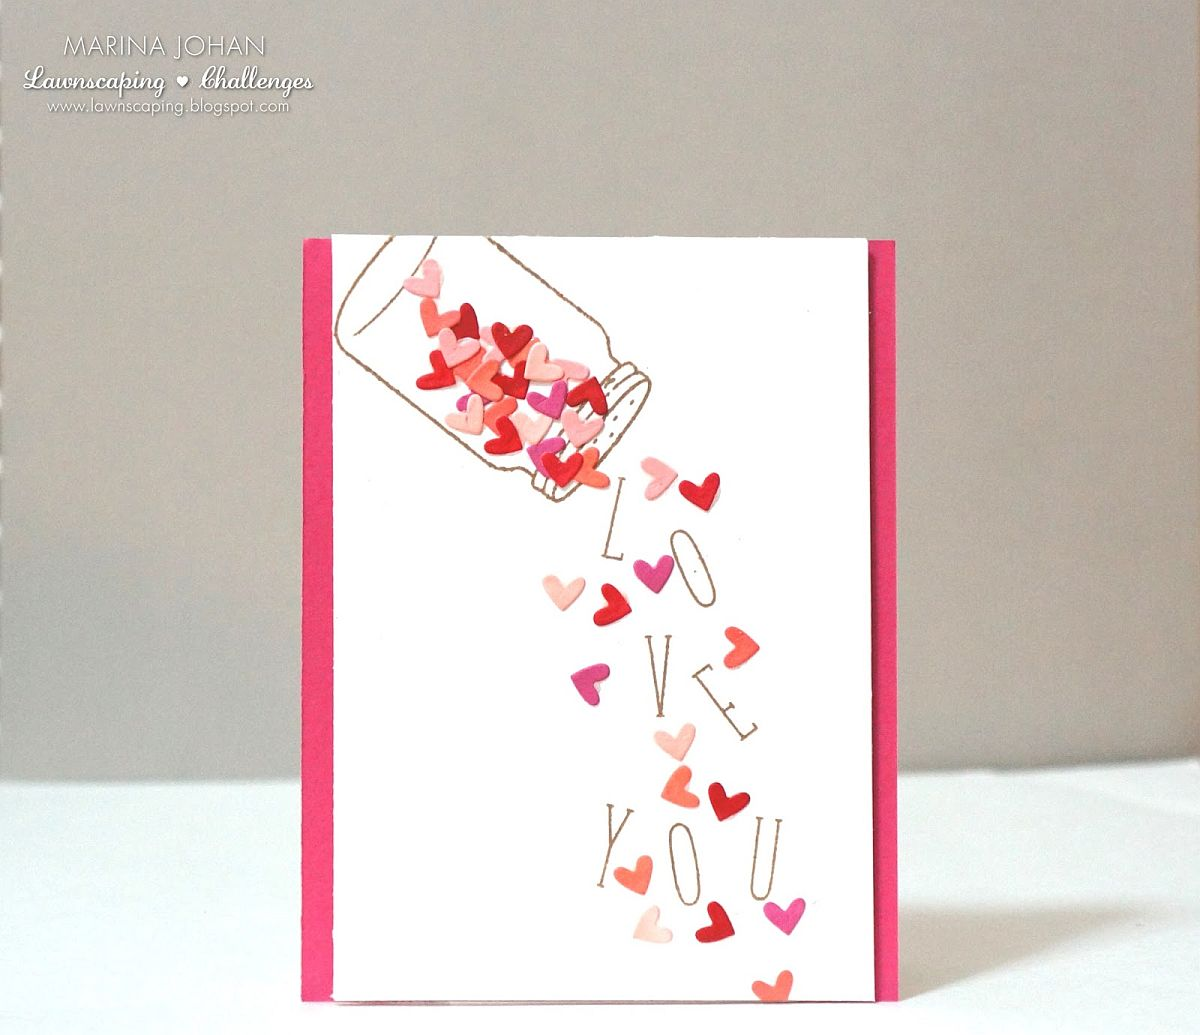 Falling Die Cut Hearts Valentine's Day Cards